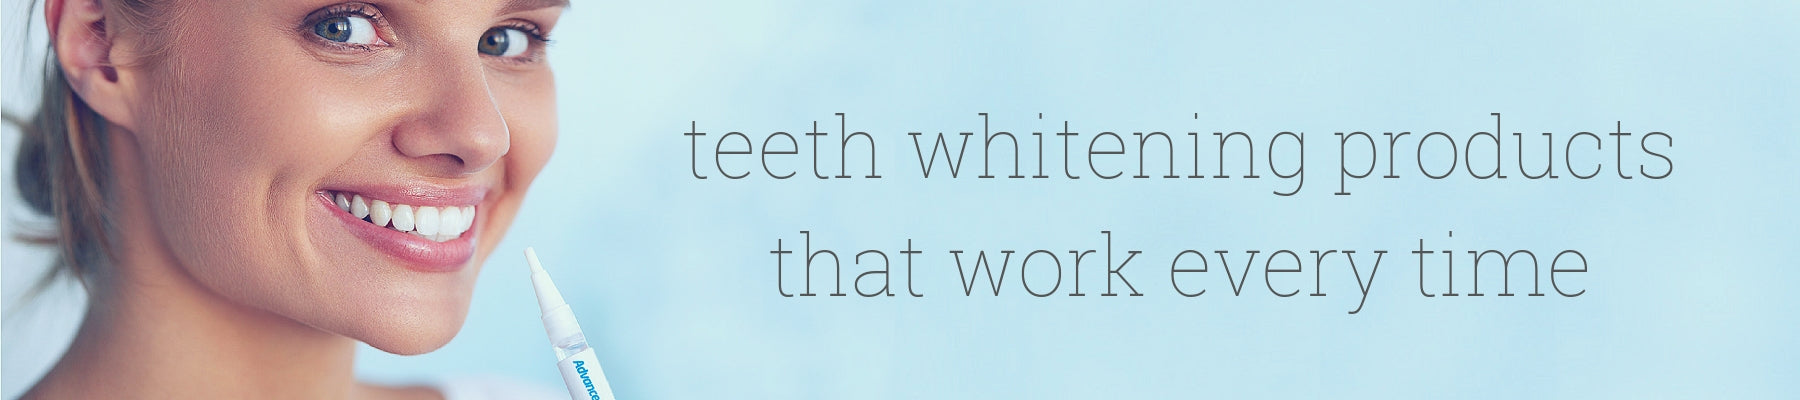 Highest rated teeth whitening products